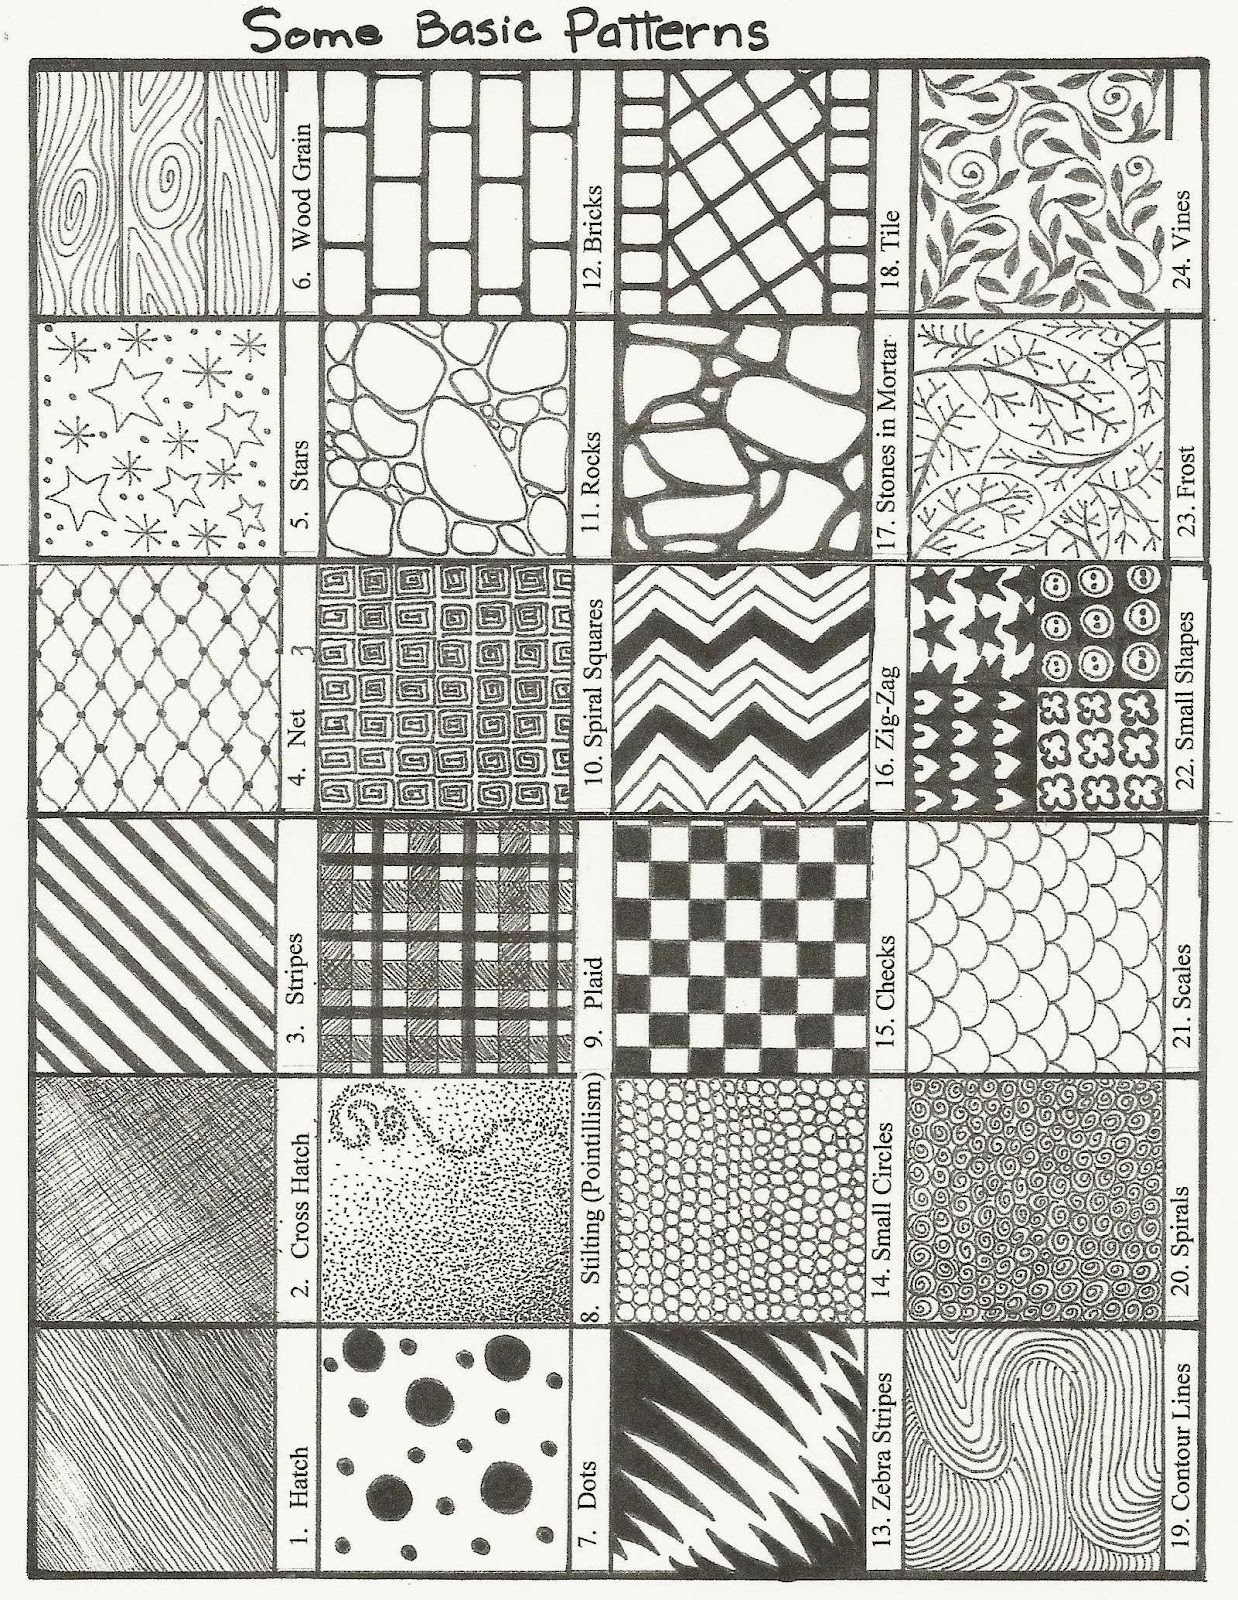 Car Wallpaper >> hoontoidly: Simple Tumblr Drawings Patterns Images